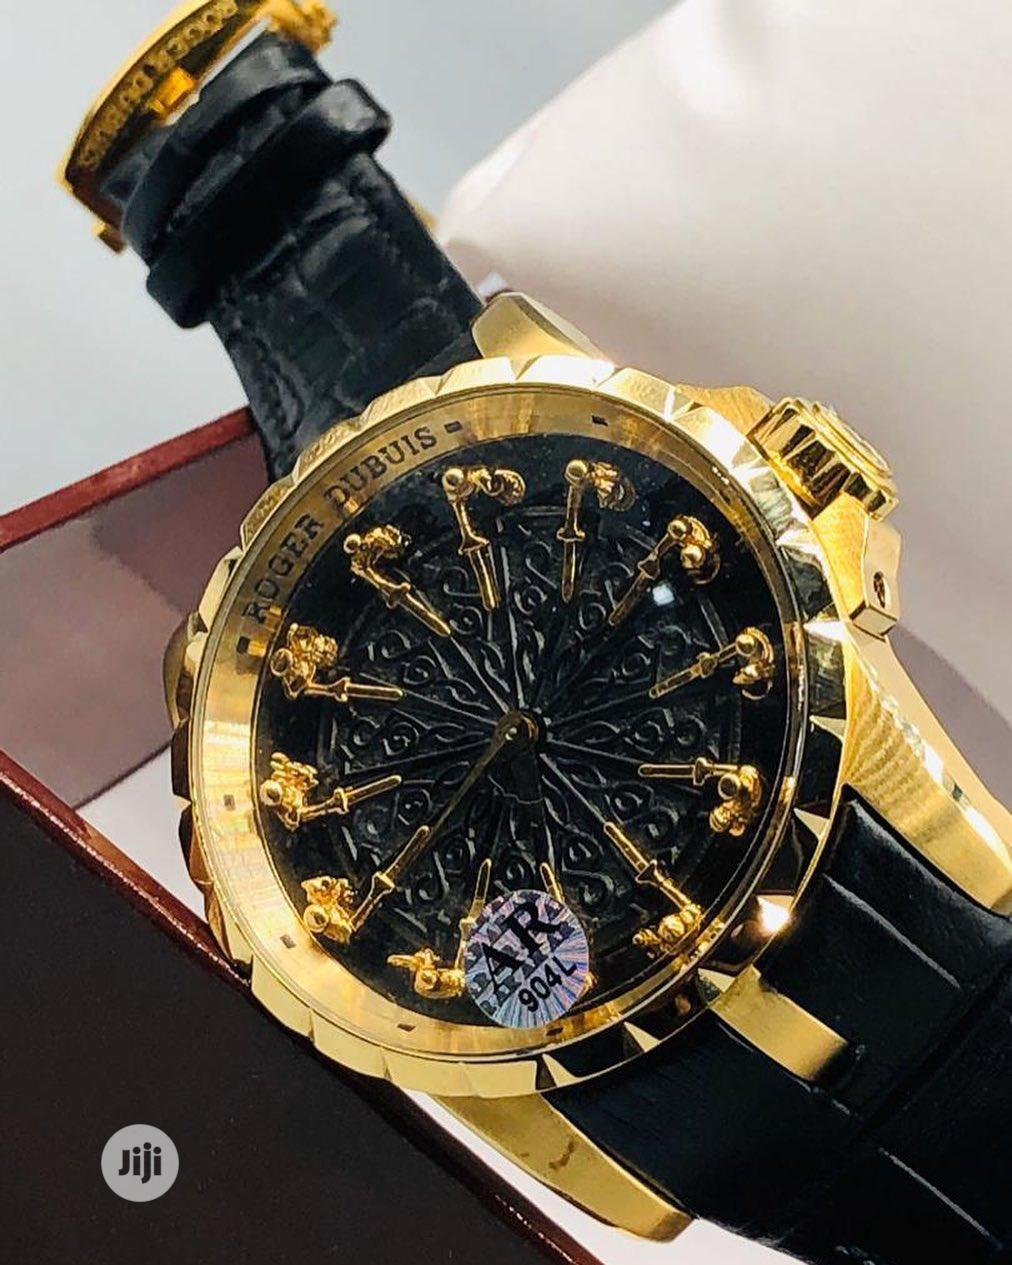 Roger Dubuis Gold Leather Strap Watch